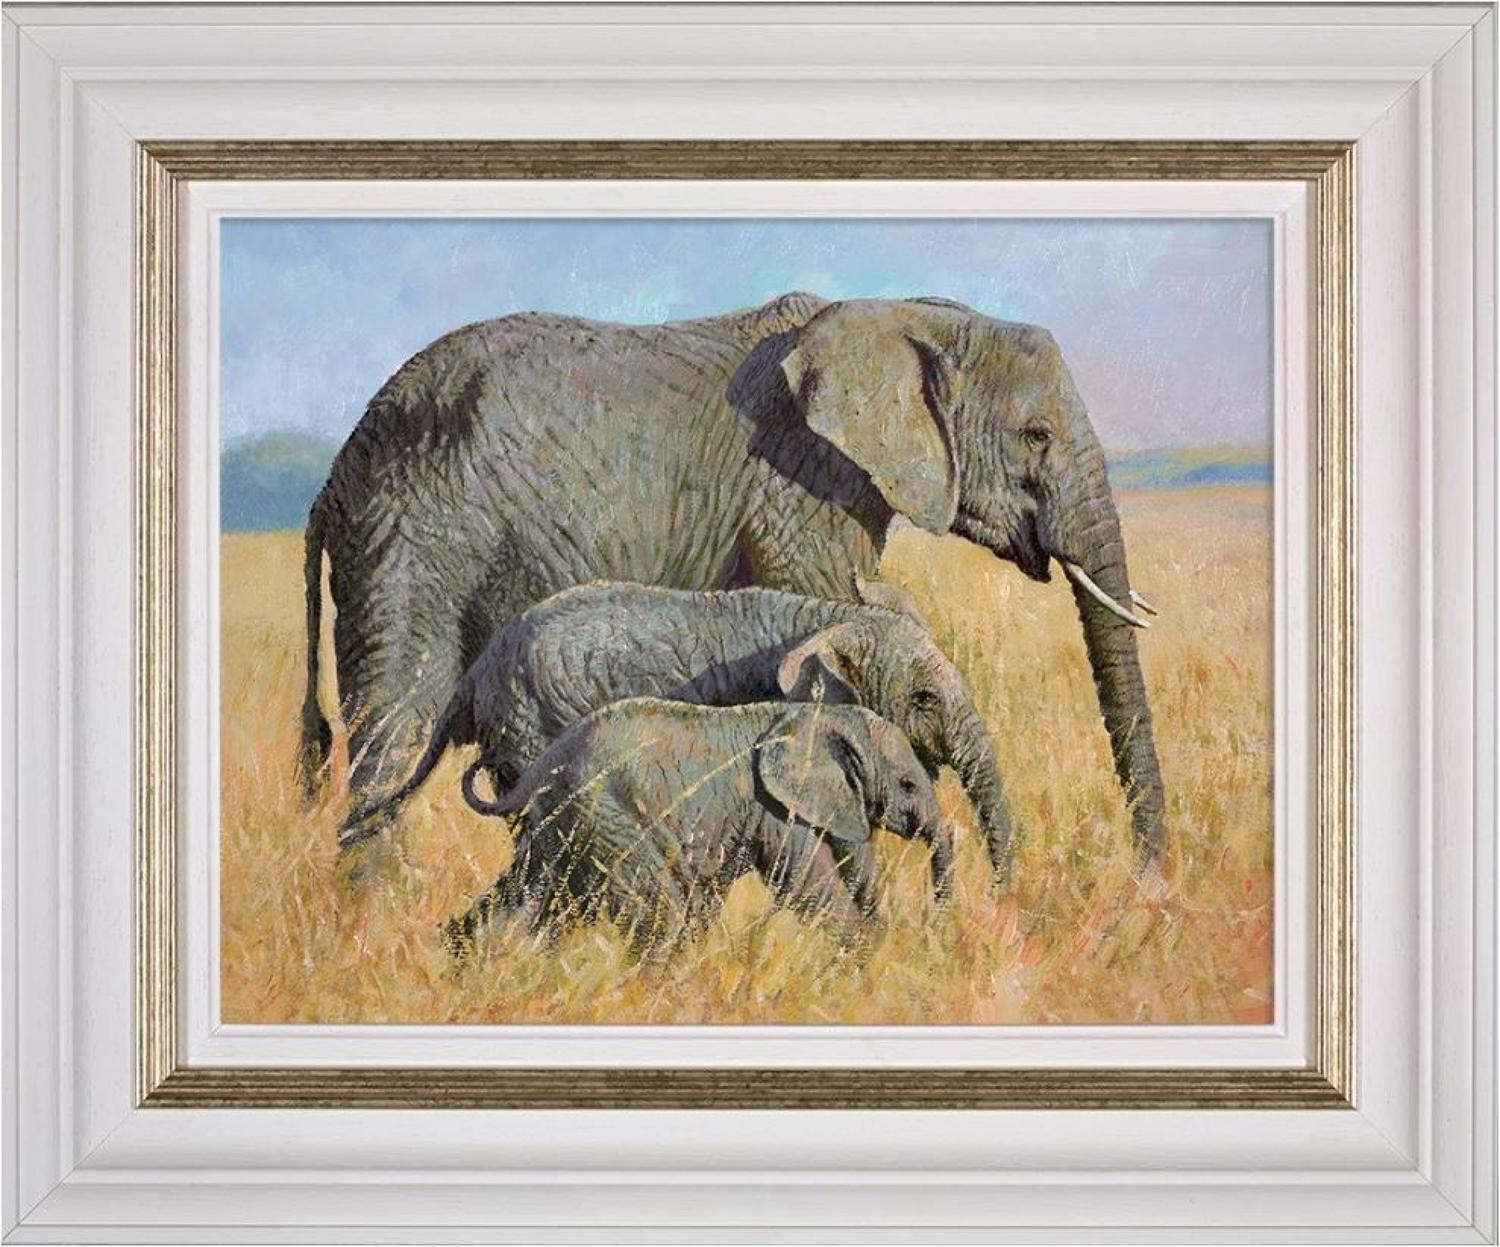 Family Outing Framed Art Print by Tony Forrest